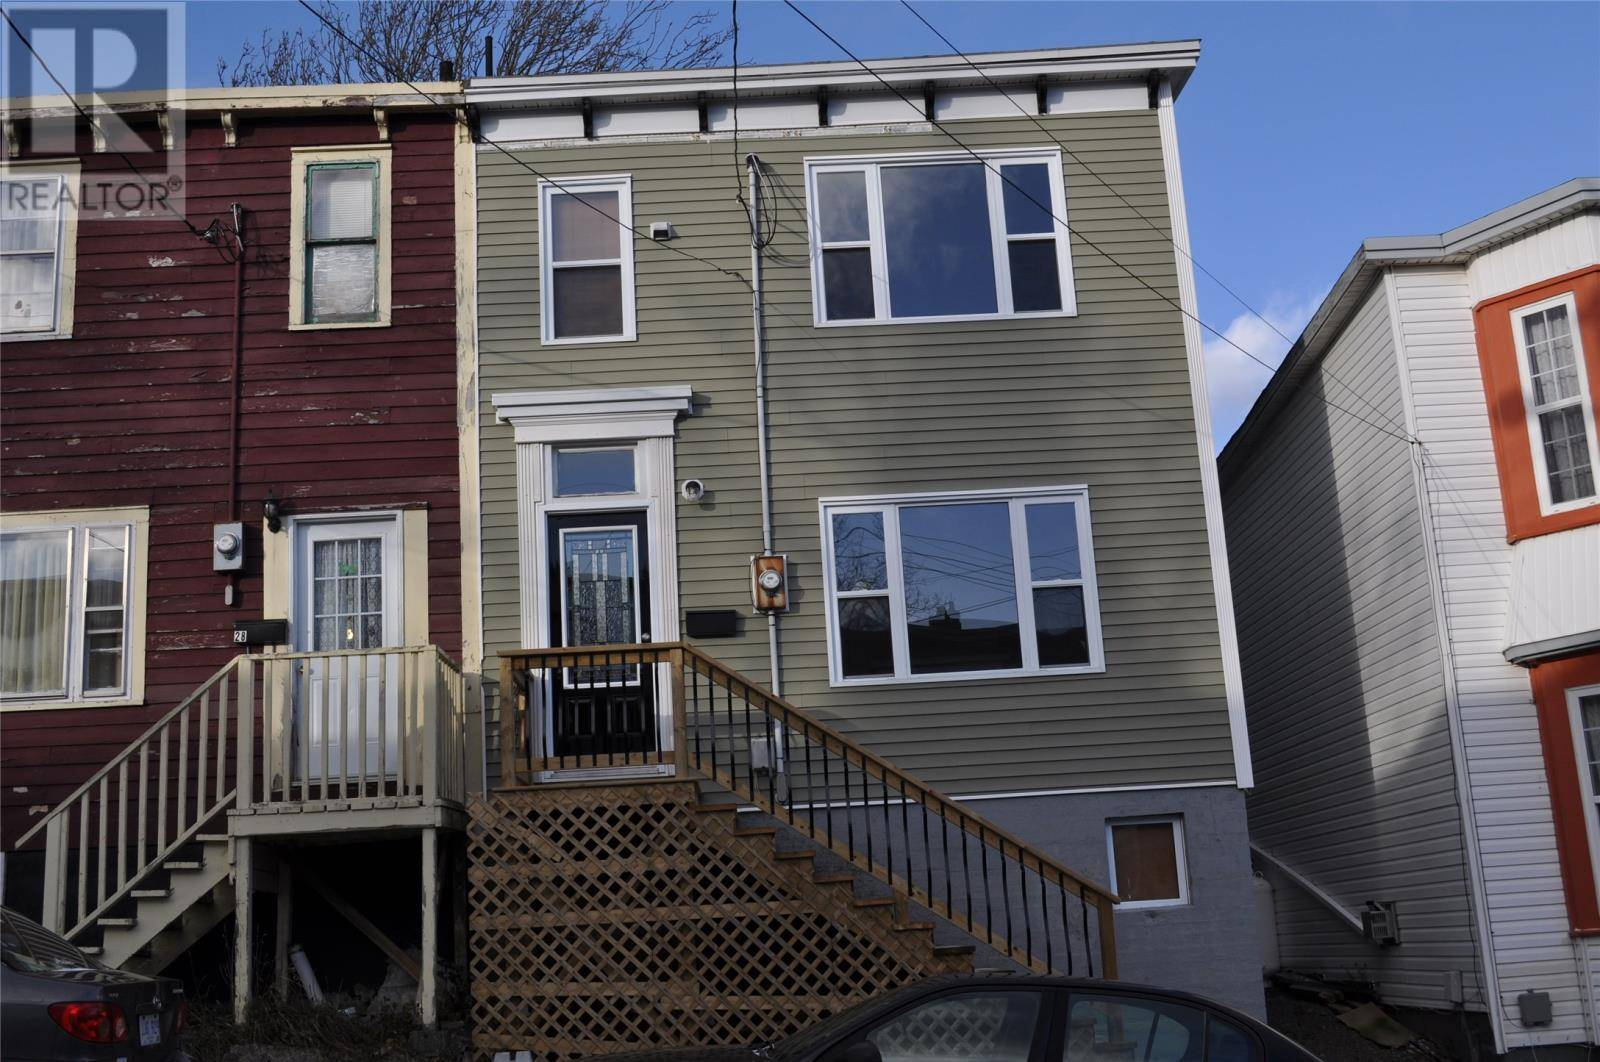 House for sale at 26 Power St St. John's Newfoundland - MLS: 1212419